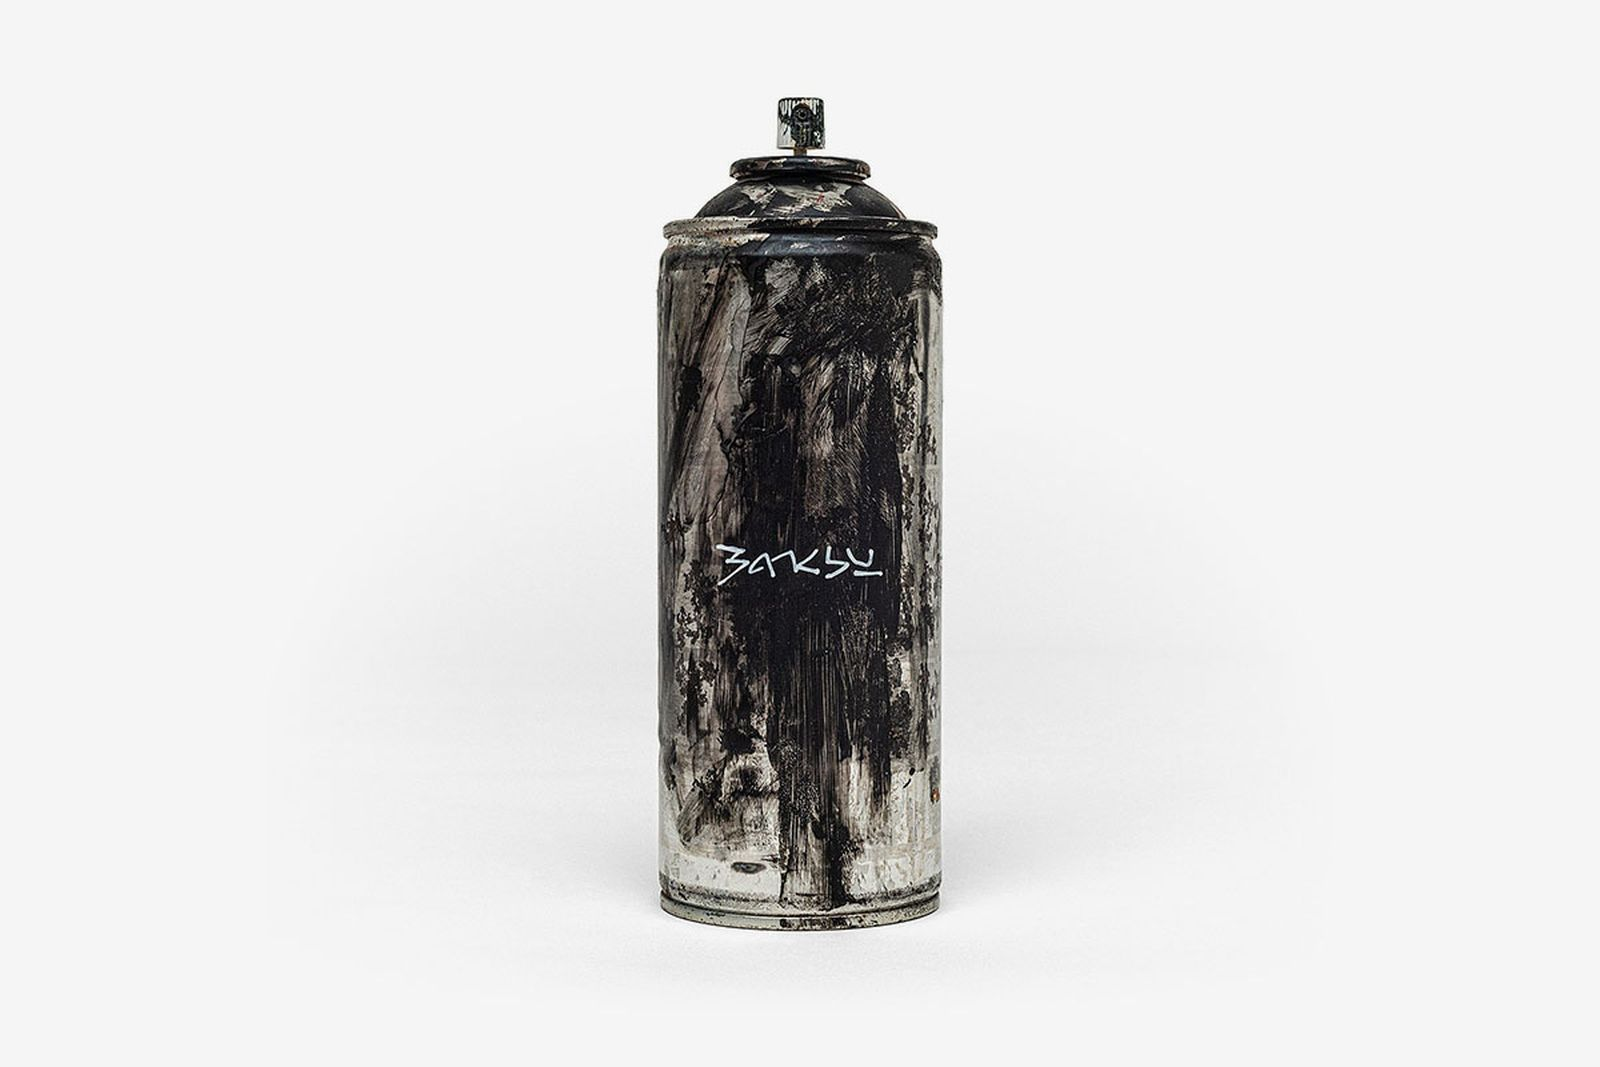 Banksy Gross Domestic Product spray paint can